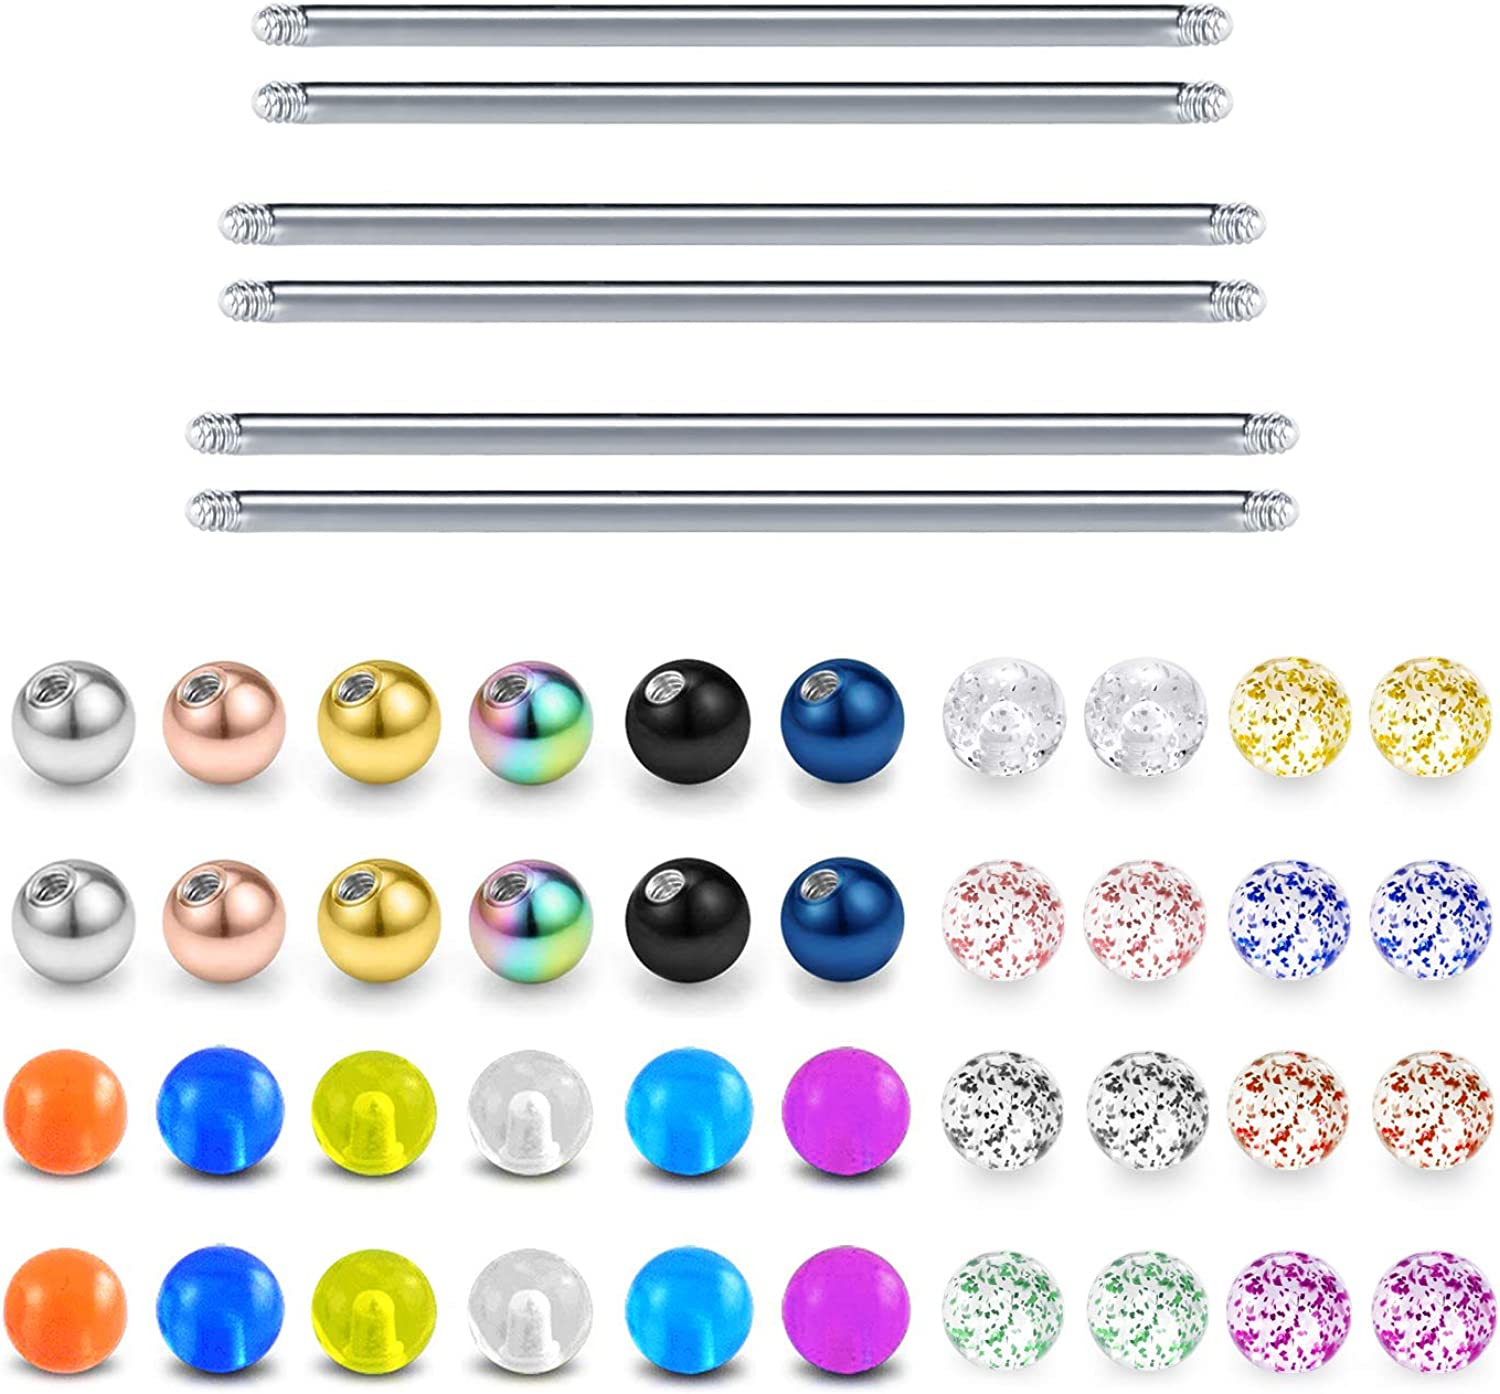 D.Bella Replacement Balls Surgical Steel Straight Bar Body Piercing Jewelry Barbell Parts 14G 32mm 35mm 38mm Bar Length